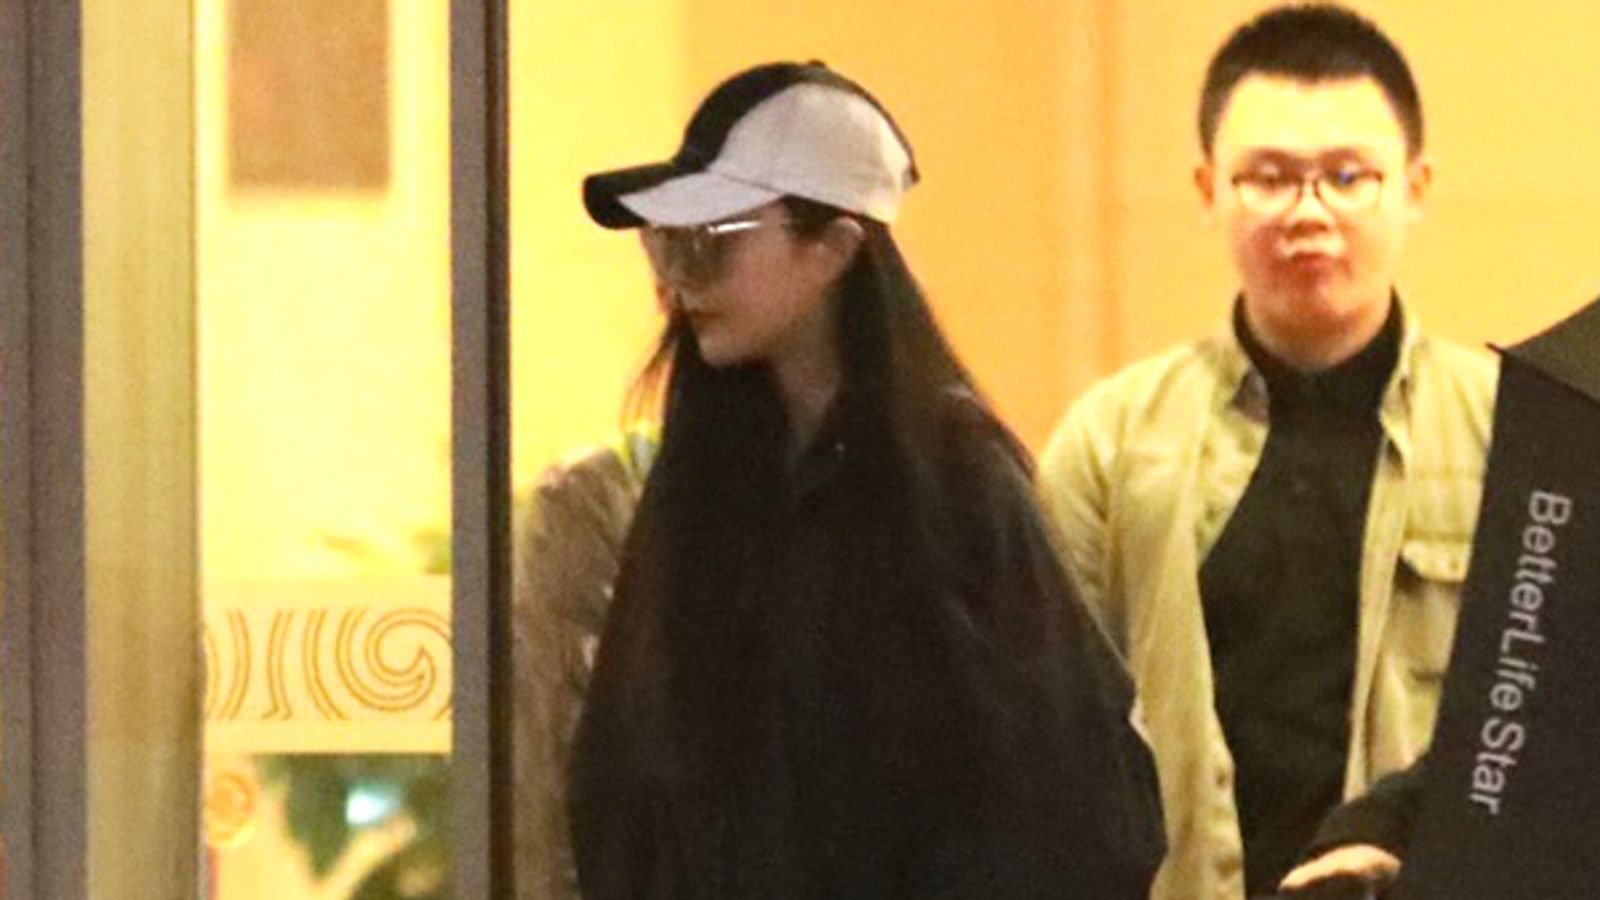 X-Men star Fan Bingbing seen for first time since disappearance amid tax investigation